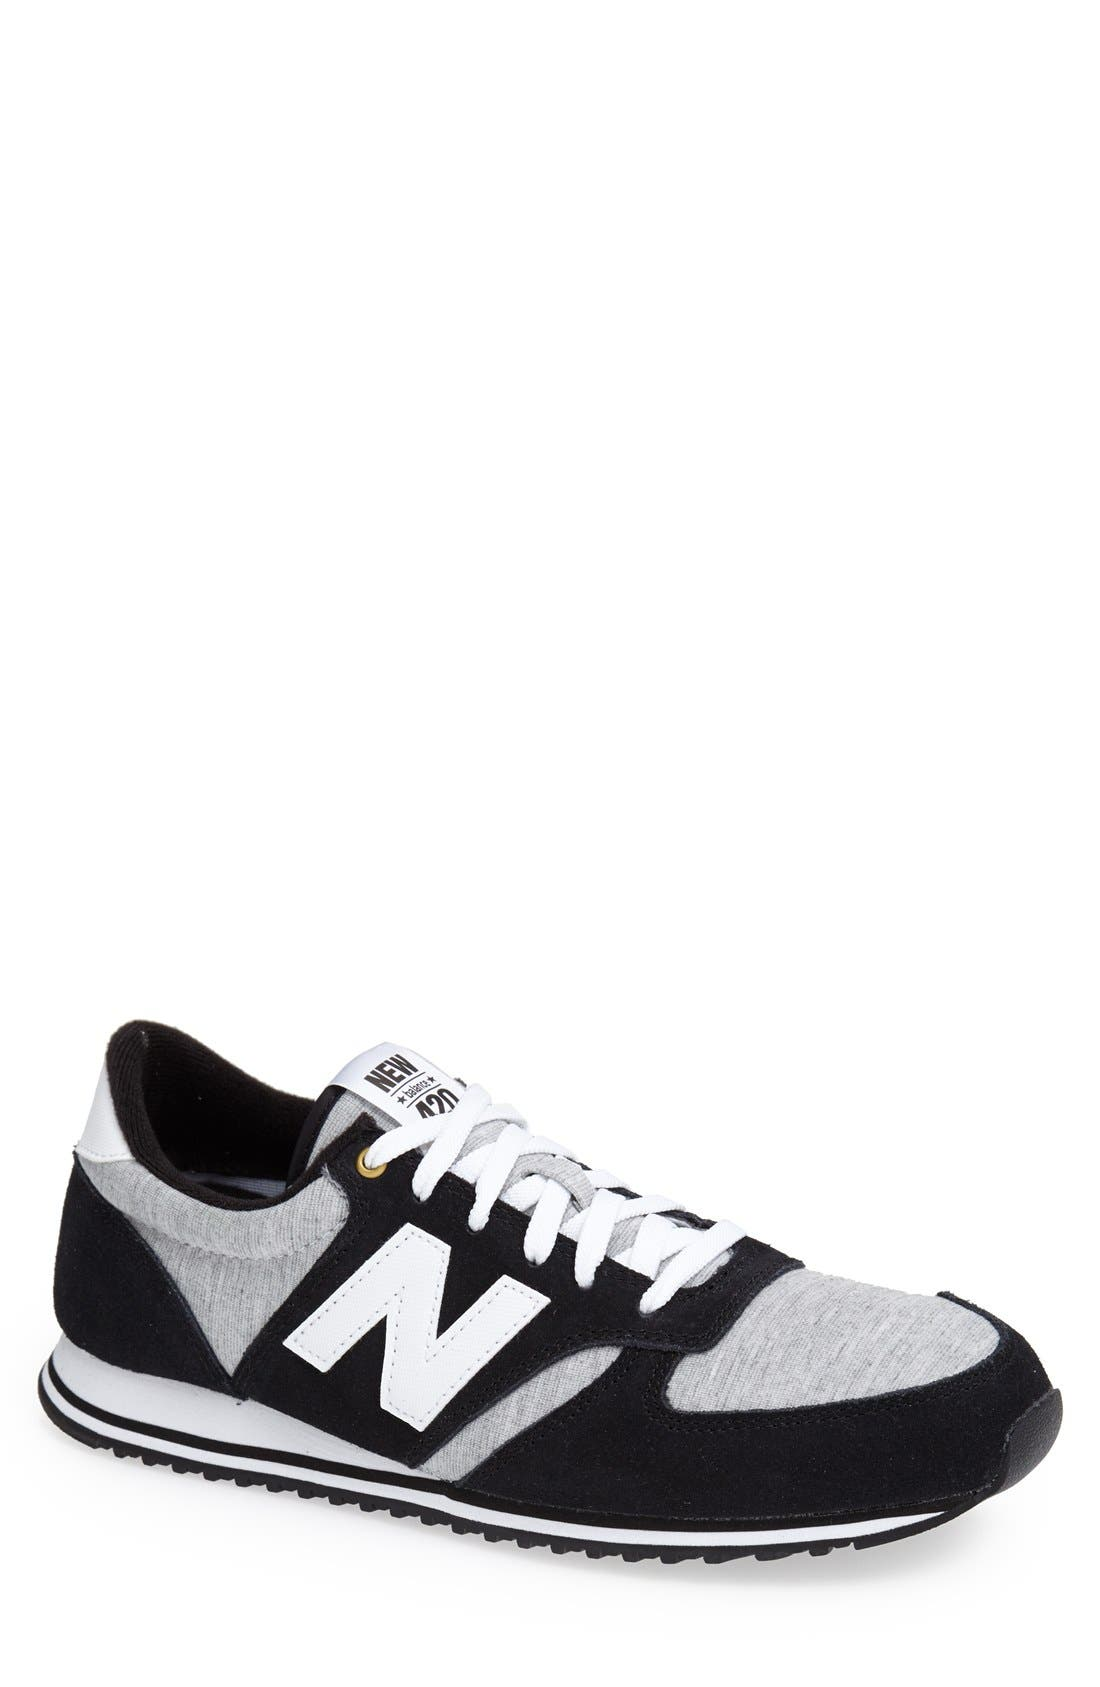 Main Image - New Balance '420' Sneaker (Men)